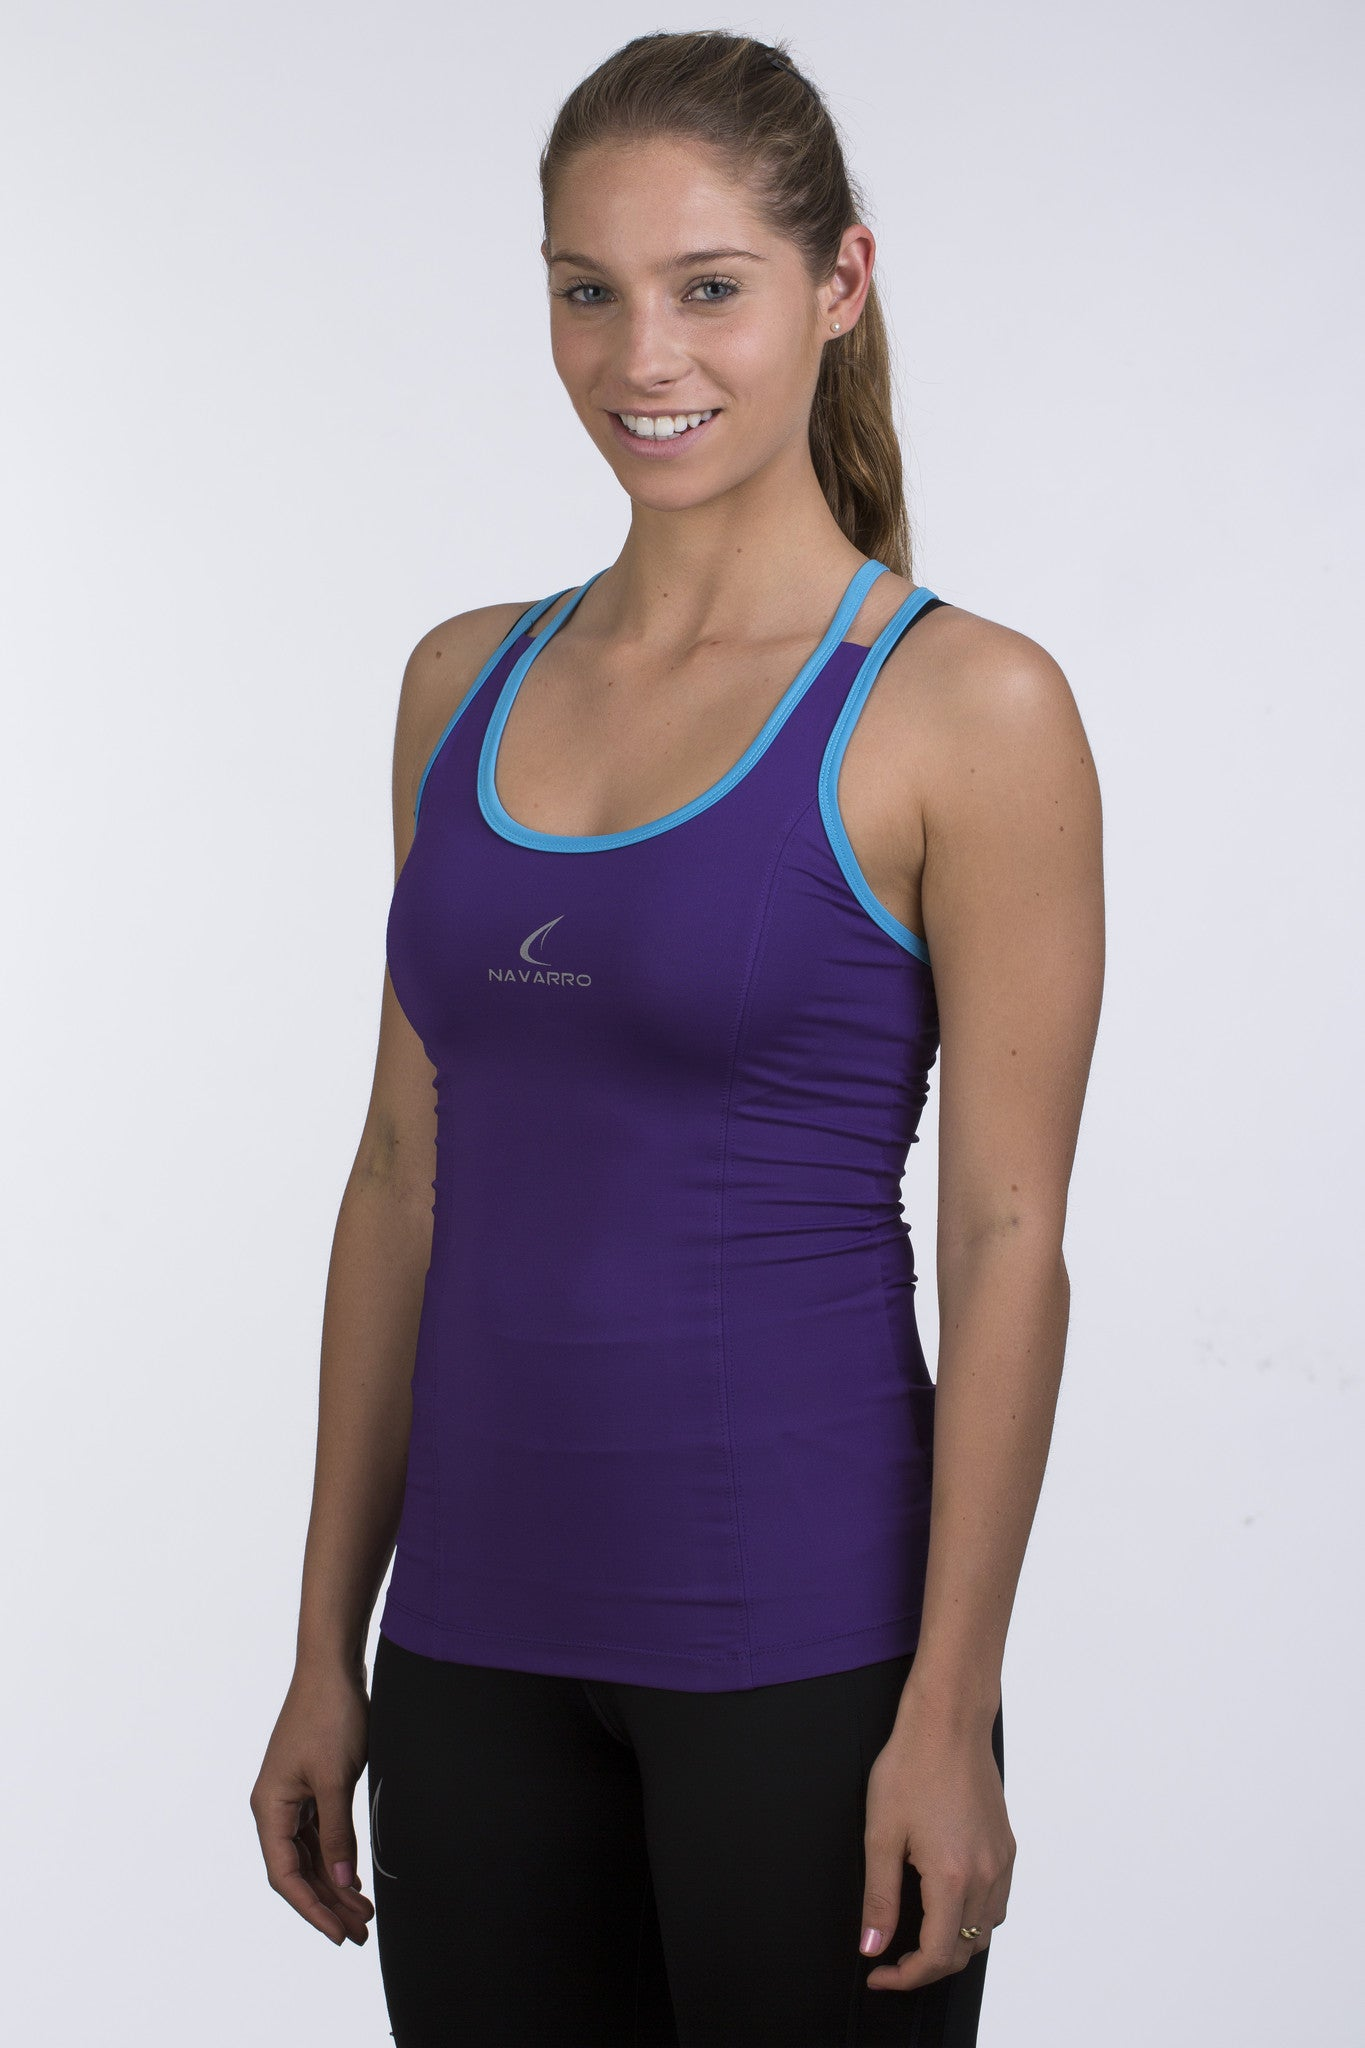 Women's W1 Shape Tank Top - Purple